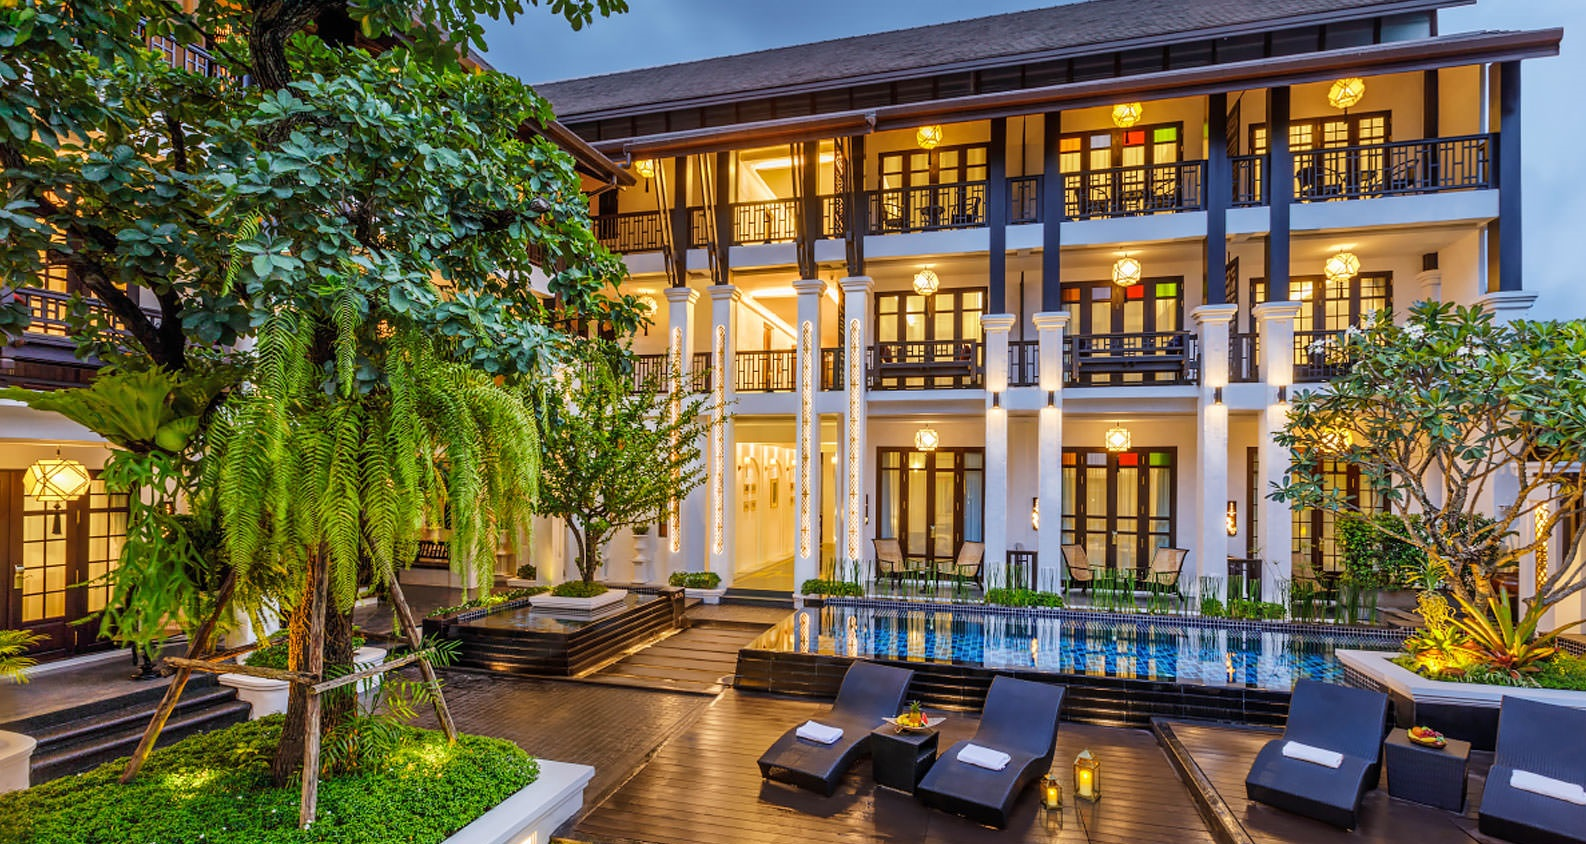 Rachamankha Hotel - Top 5 best hotels in Chiang Mai